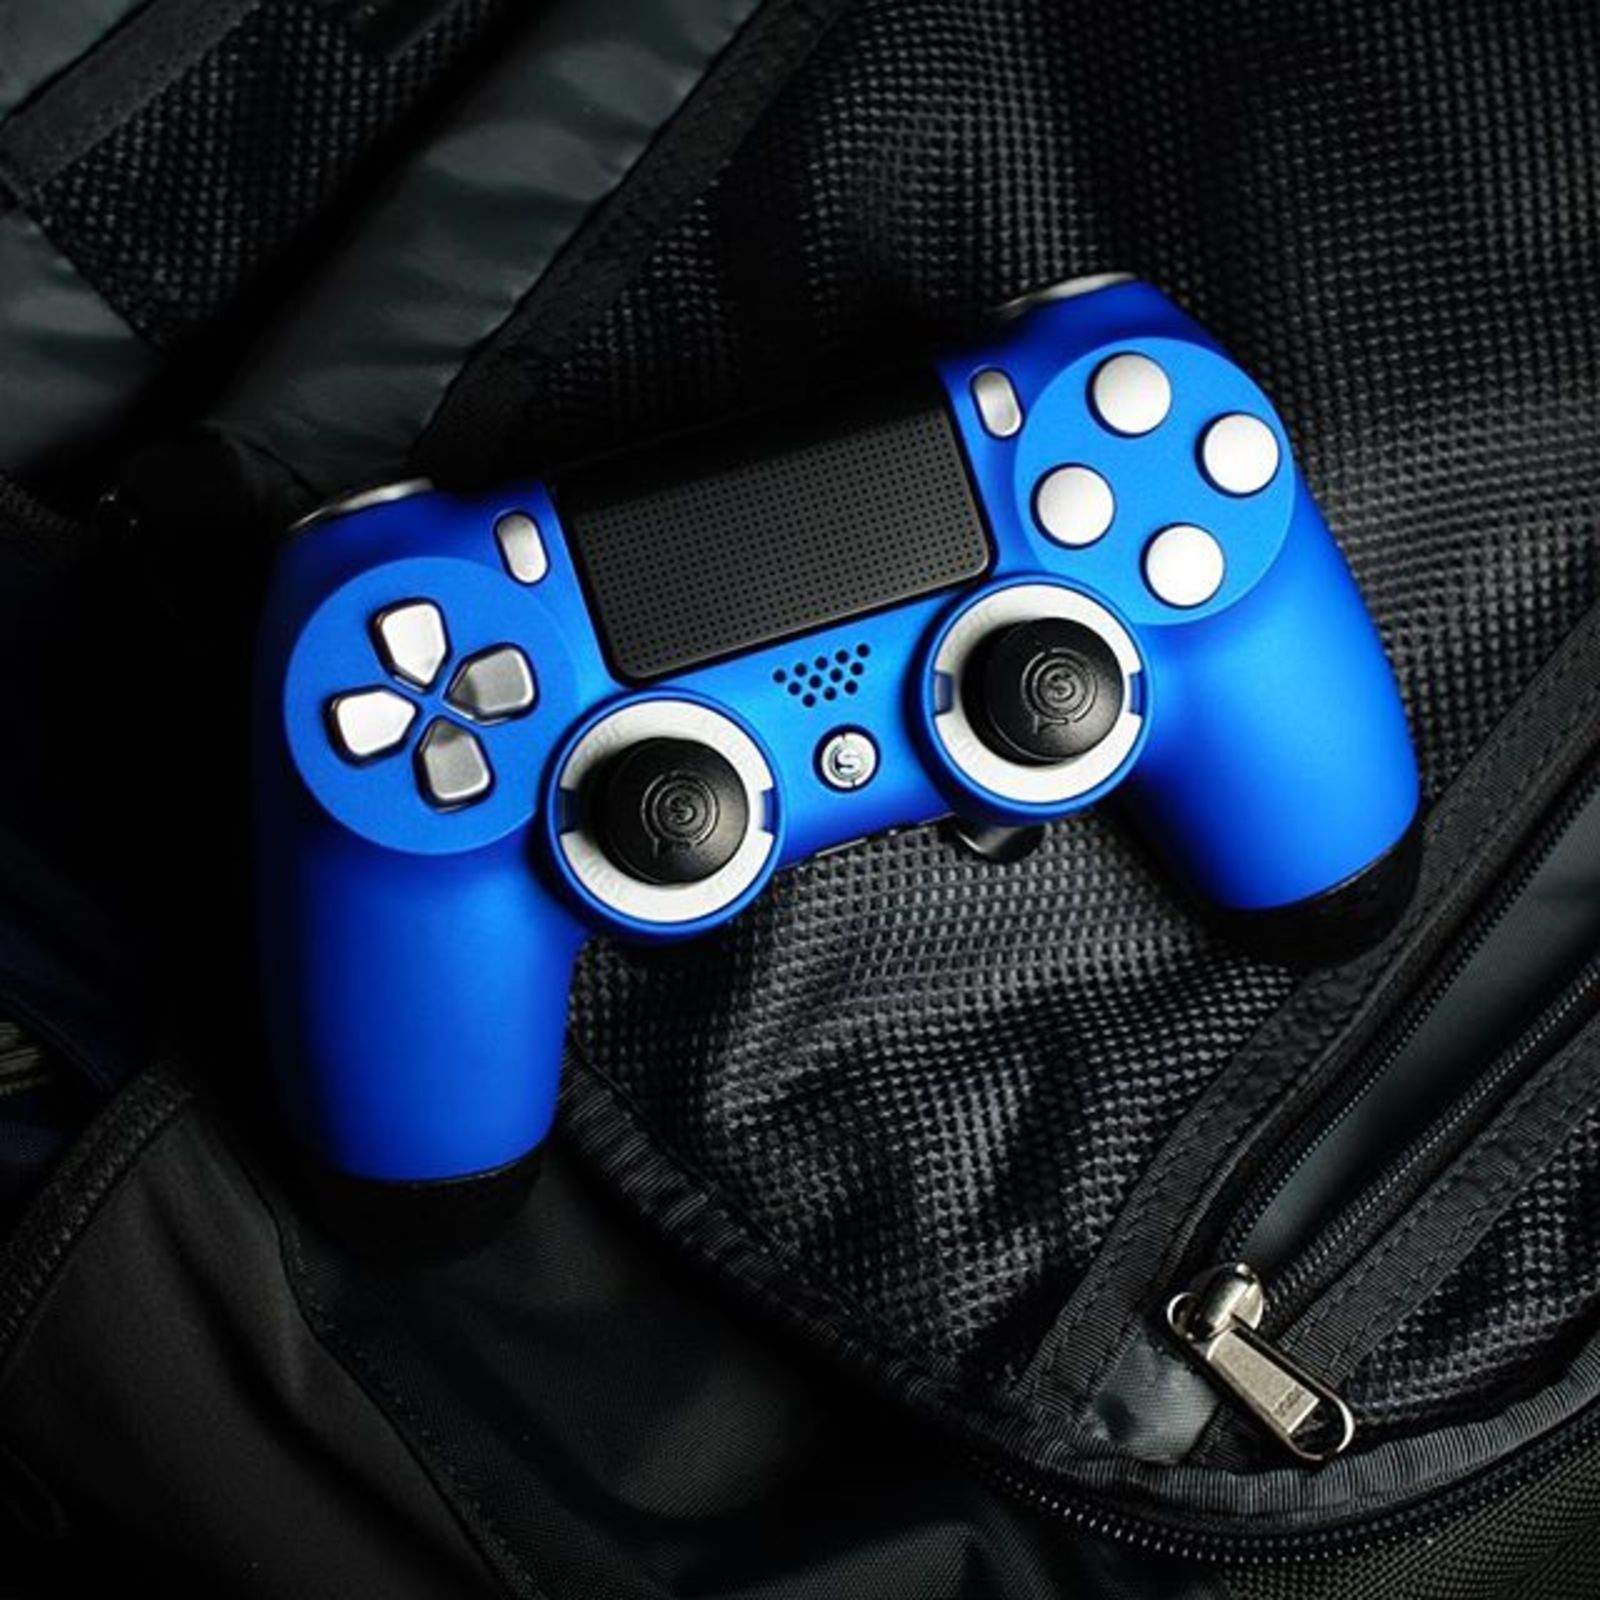 scuf gaming controllers come to australia. Black Bedroom Furniture Sets. Home Design Ideas